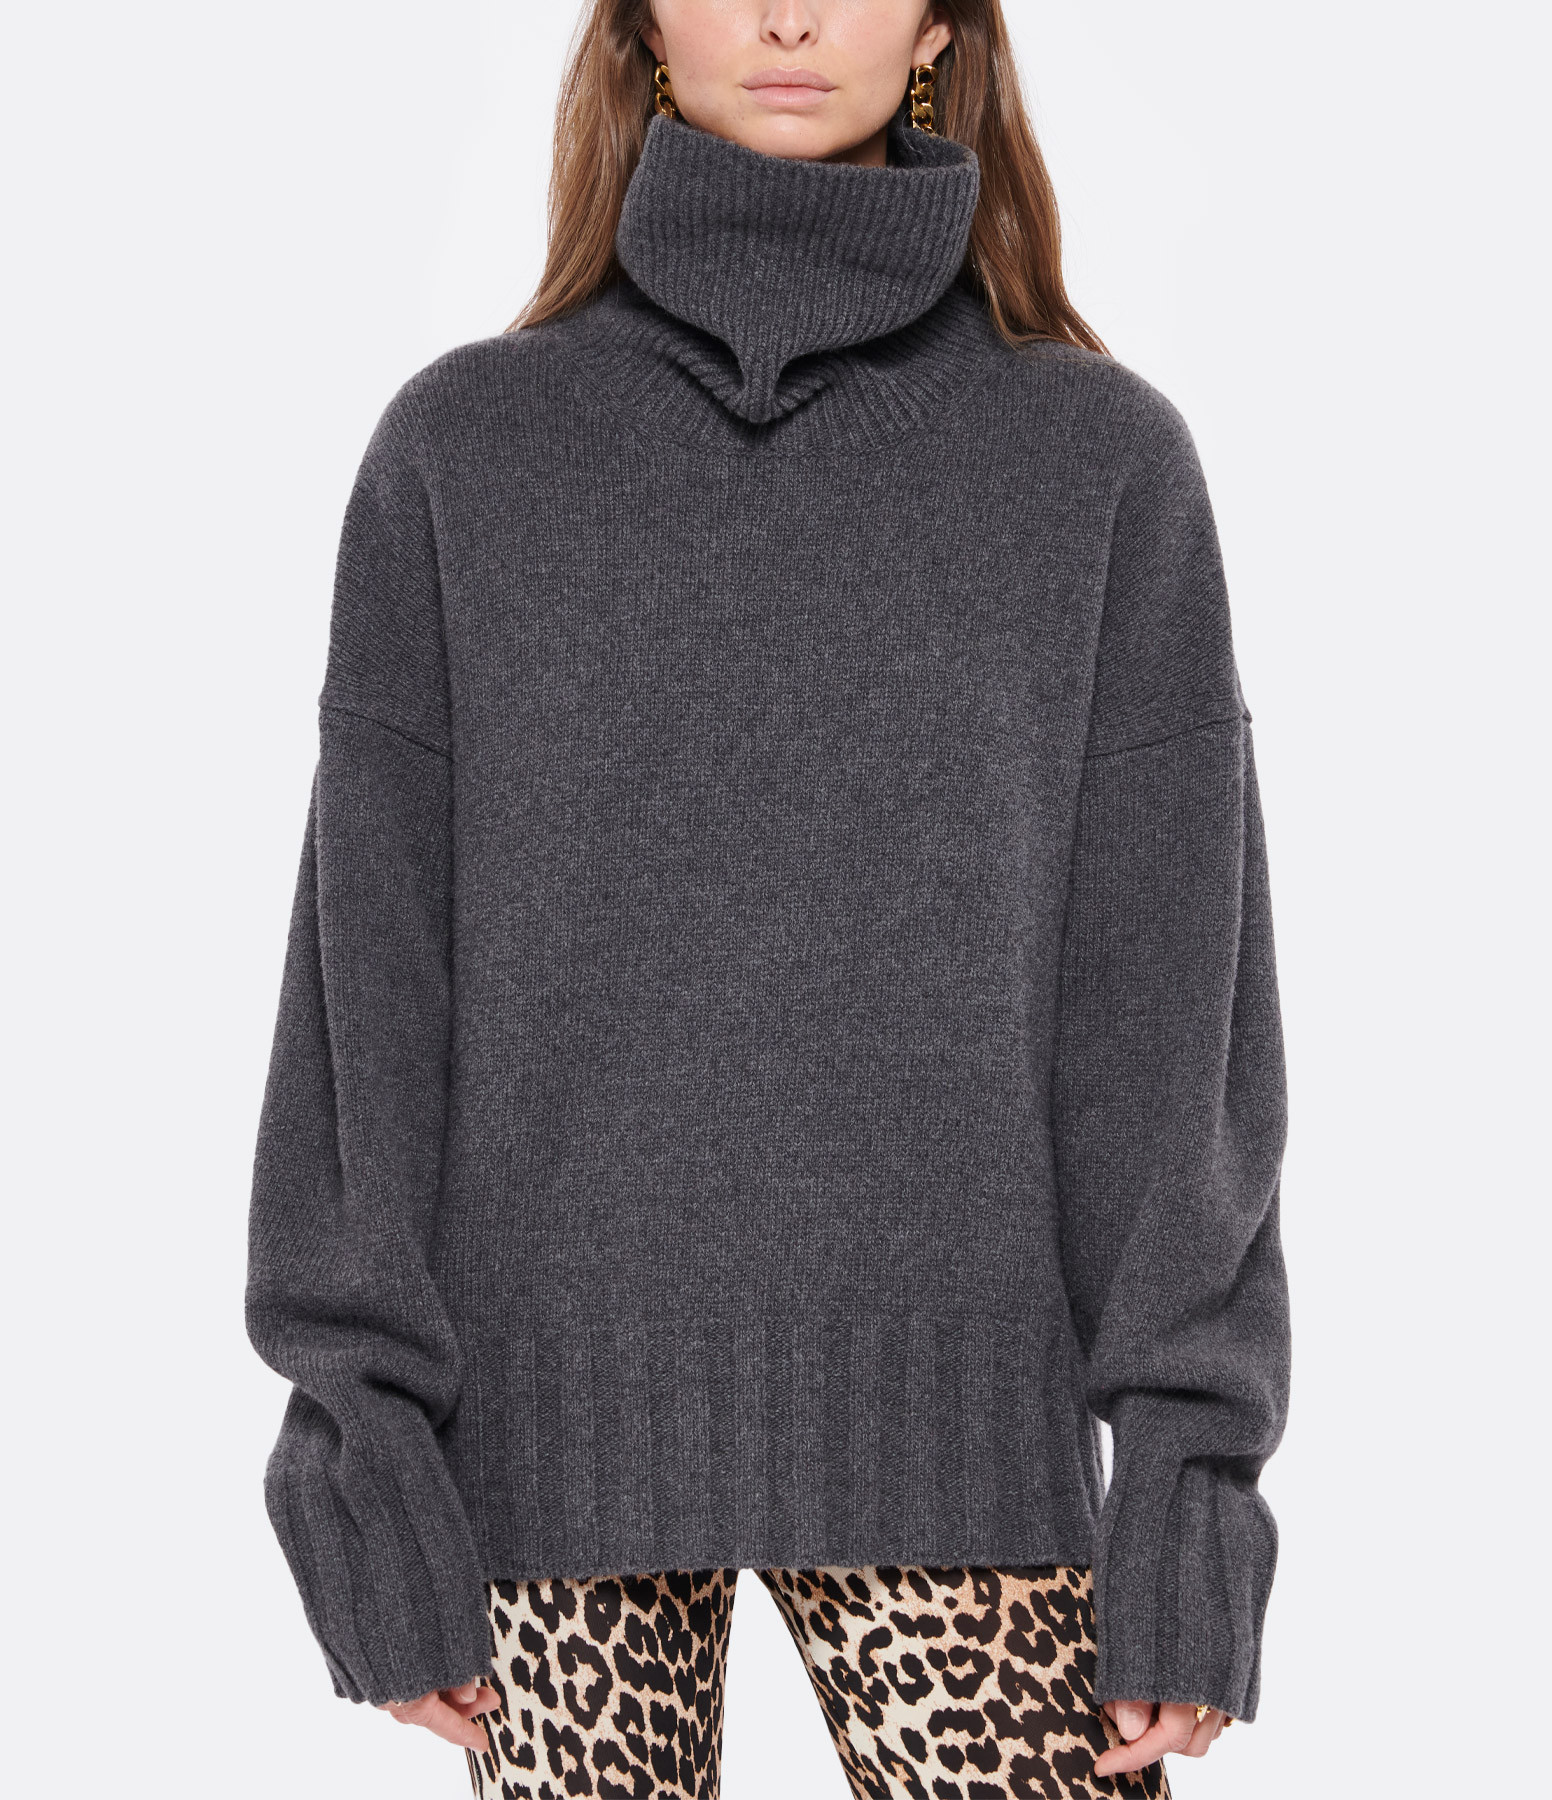 MADE IN TOMBOY - Pull Ely Col Roulé Laine Gris